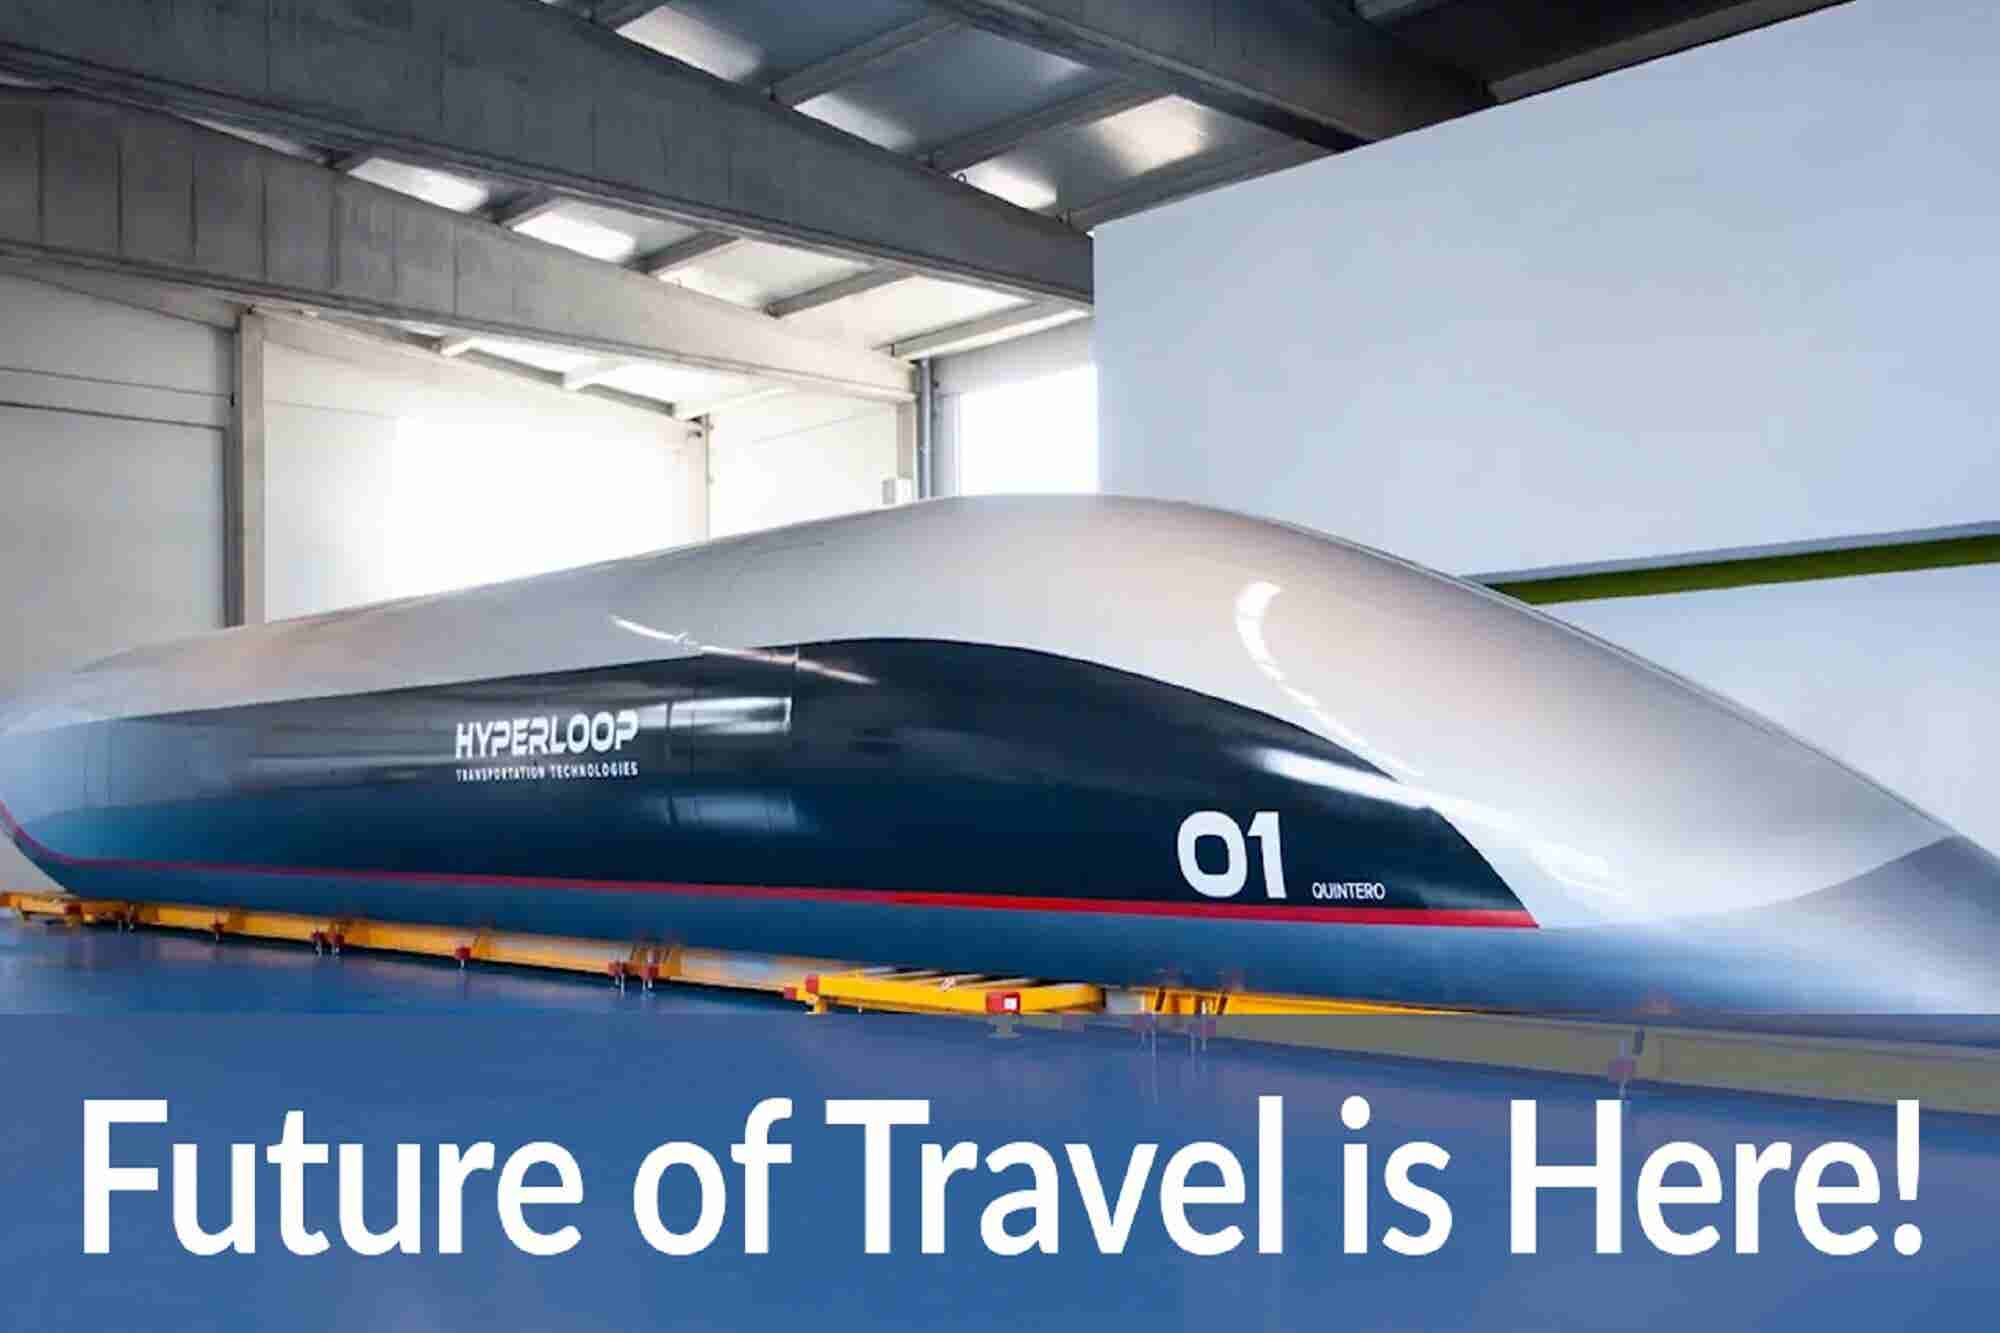 Instagram Gets a New Boss & World's First Full-Scale Hyperloop Passenger Capsule is Here: 4 Things to Know Today